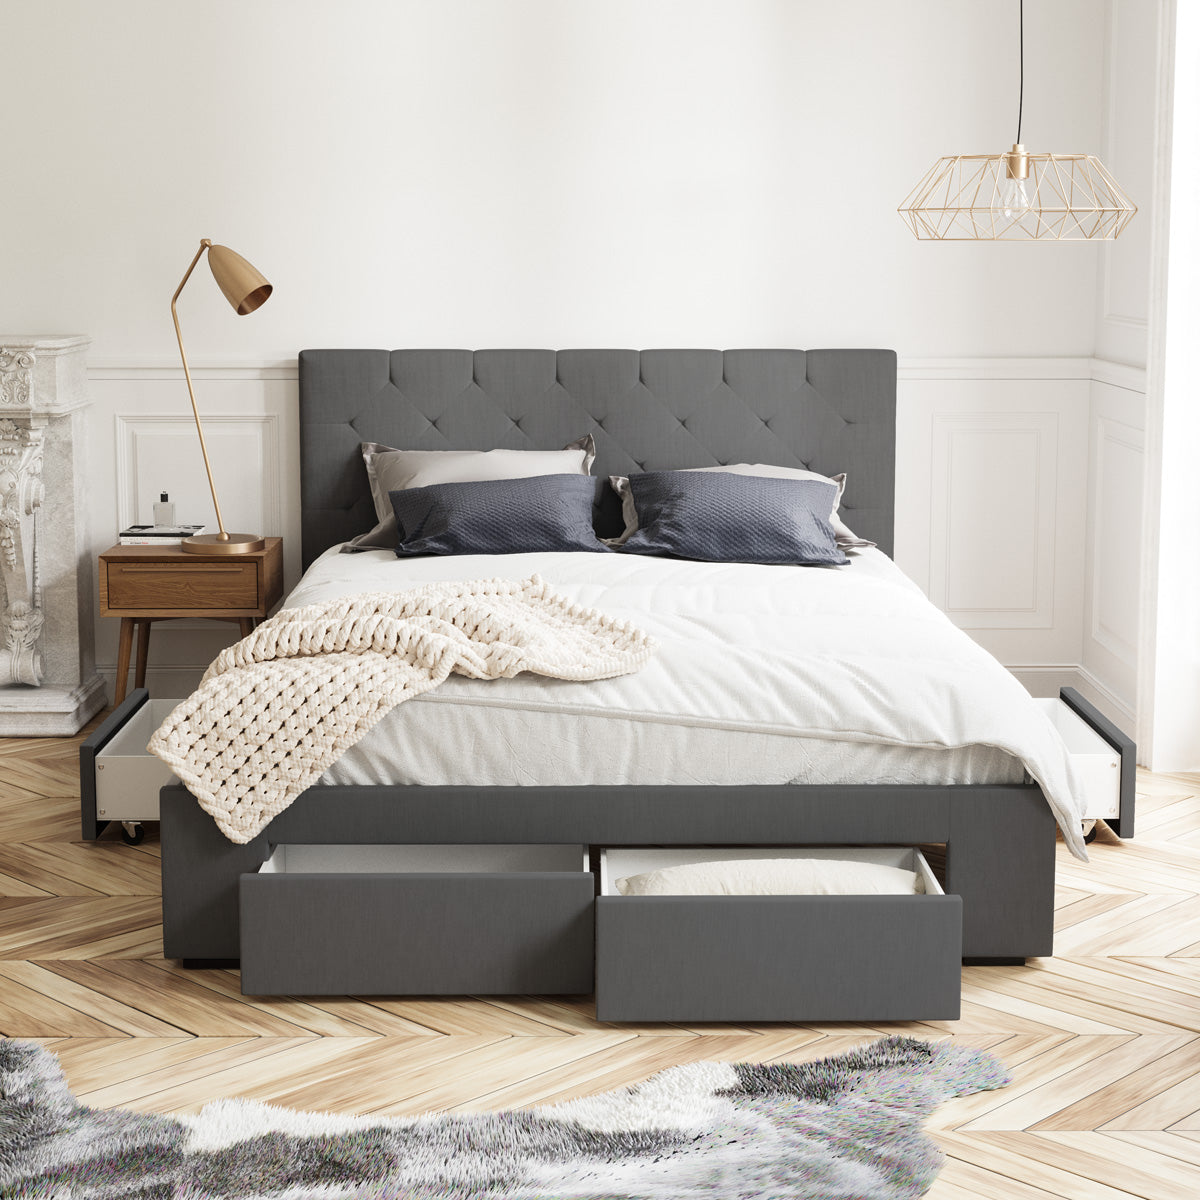 Webster Bed Frame with Four Storage Drawers (Charcoal Fabric)